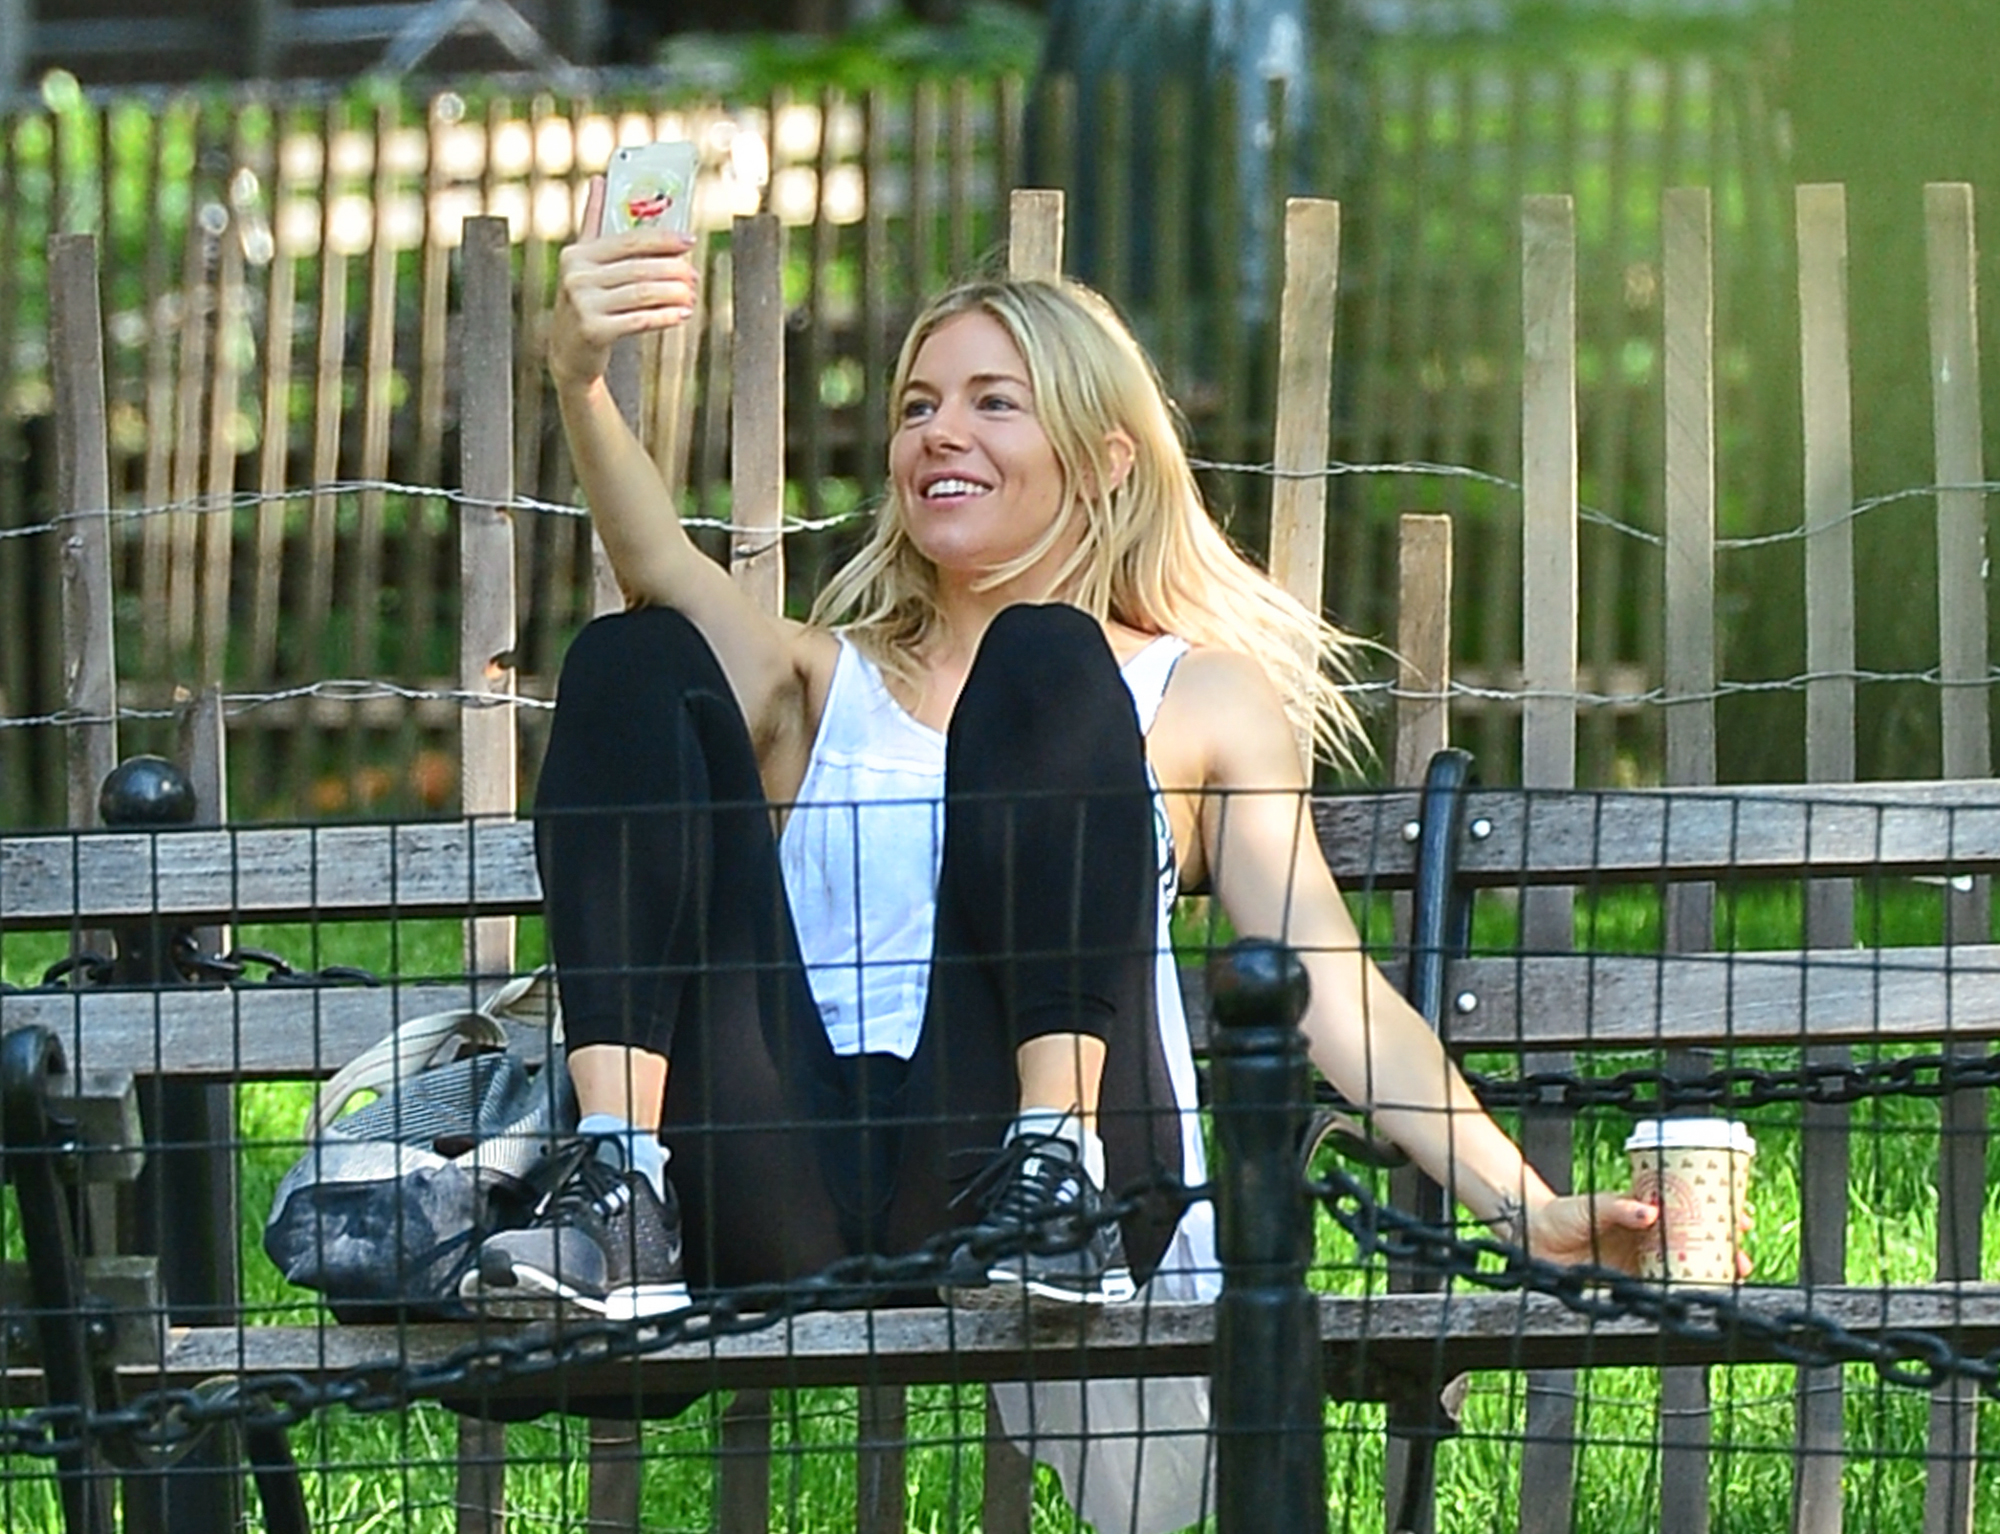 EXCLUSIVE: Sienna Miller takes selfies in Washington Square Park as she enjoys the sunny day in NYC